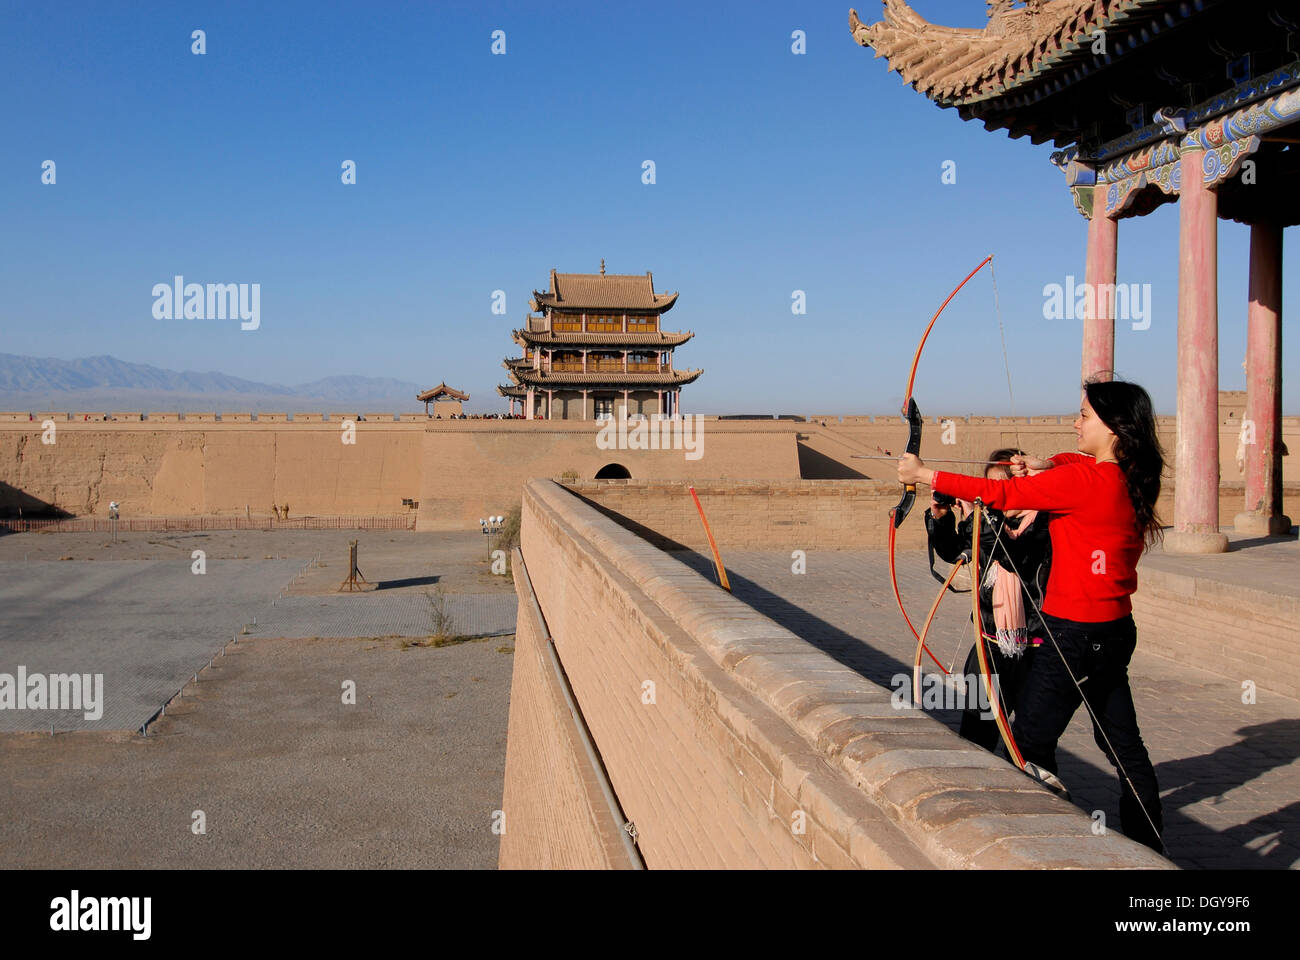 Chinese woman using a bow and arrow at the Jiayuguan Fortress with two gatehouses at the western end of the Great Wall of China - Stock Image